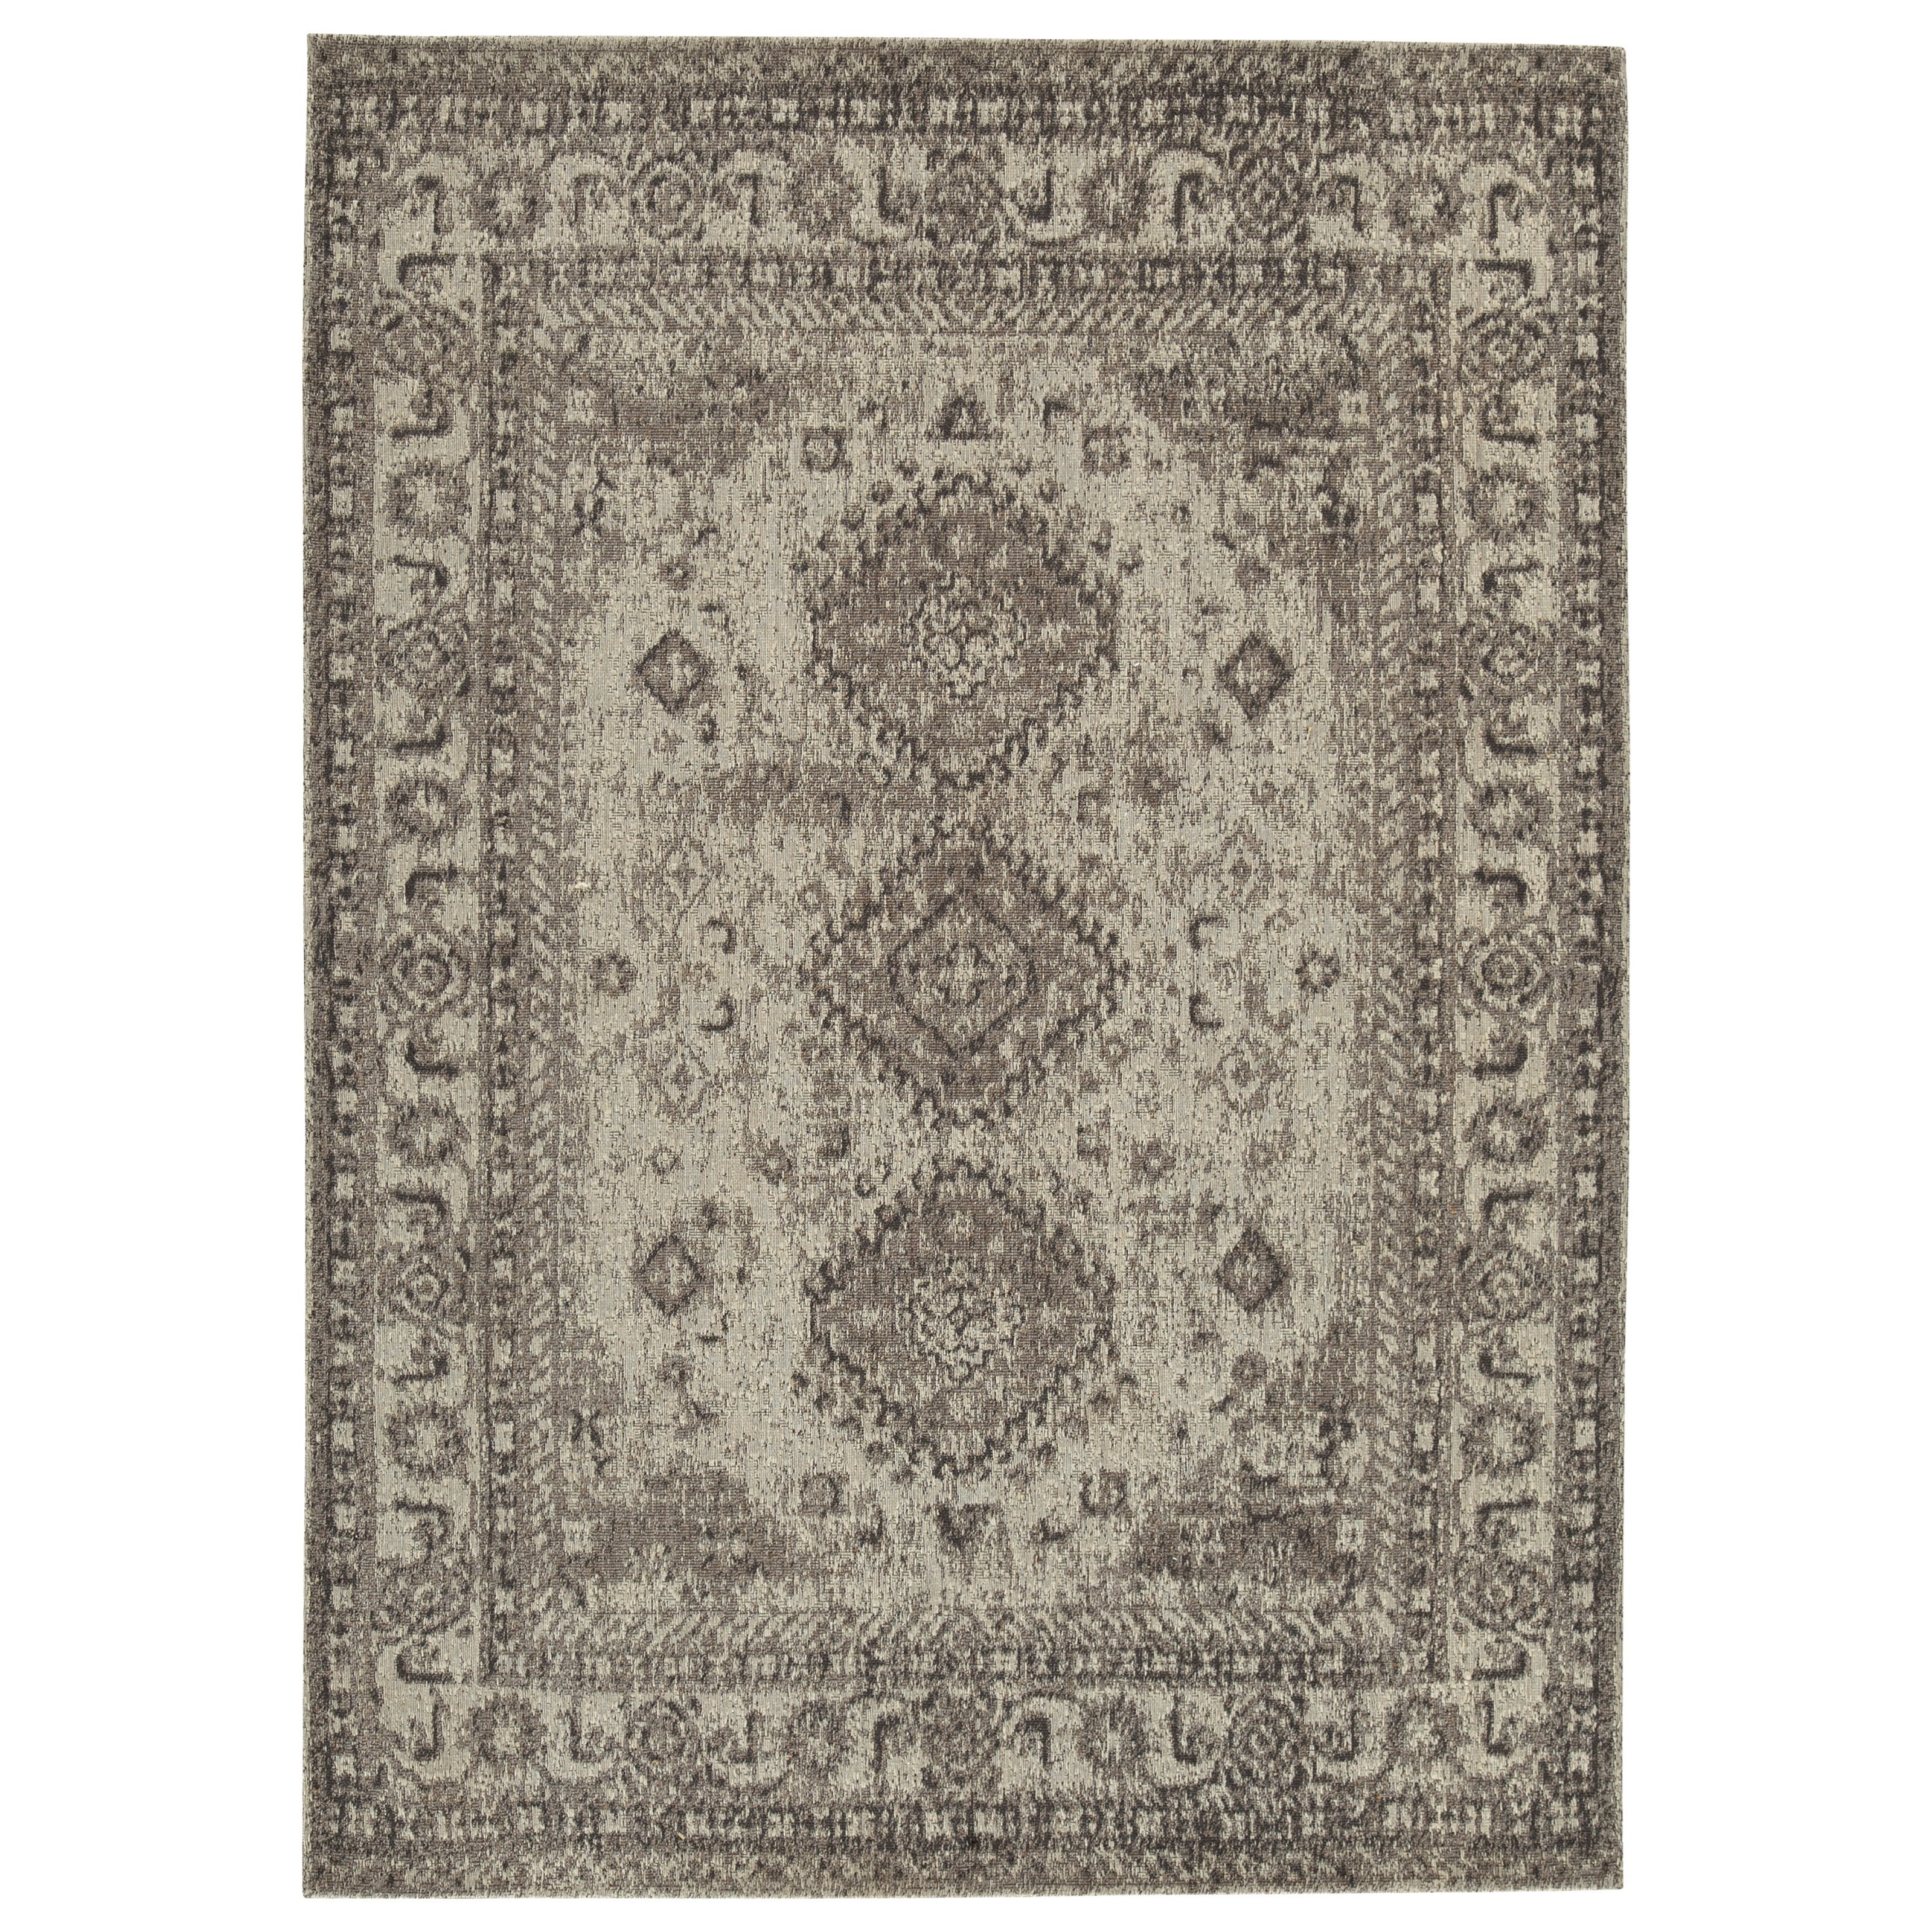 Traditional Classics Area Rugs Laycie Multi Medium Rug by Signature Design by Ashley at Furniture Barn